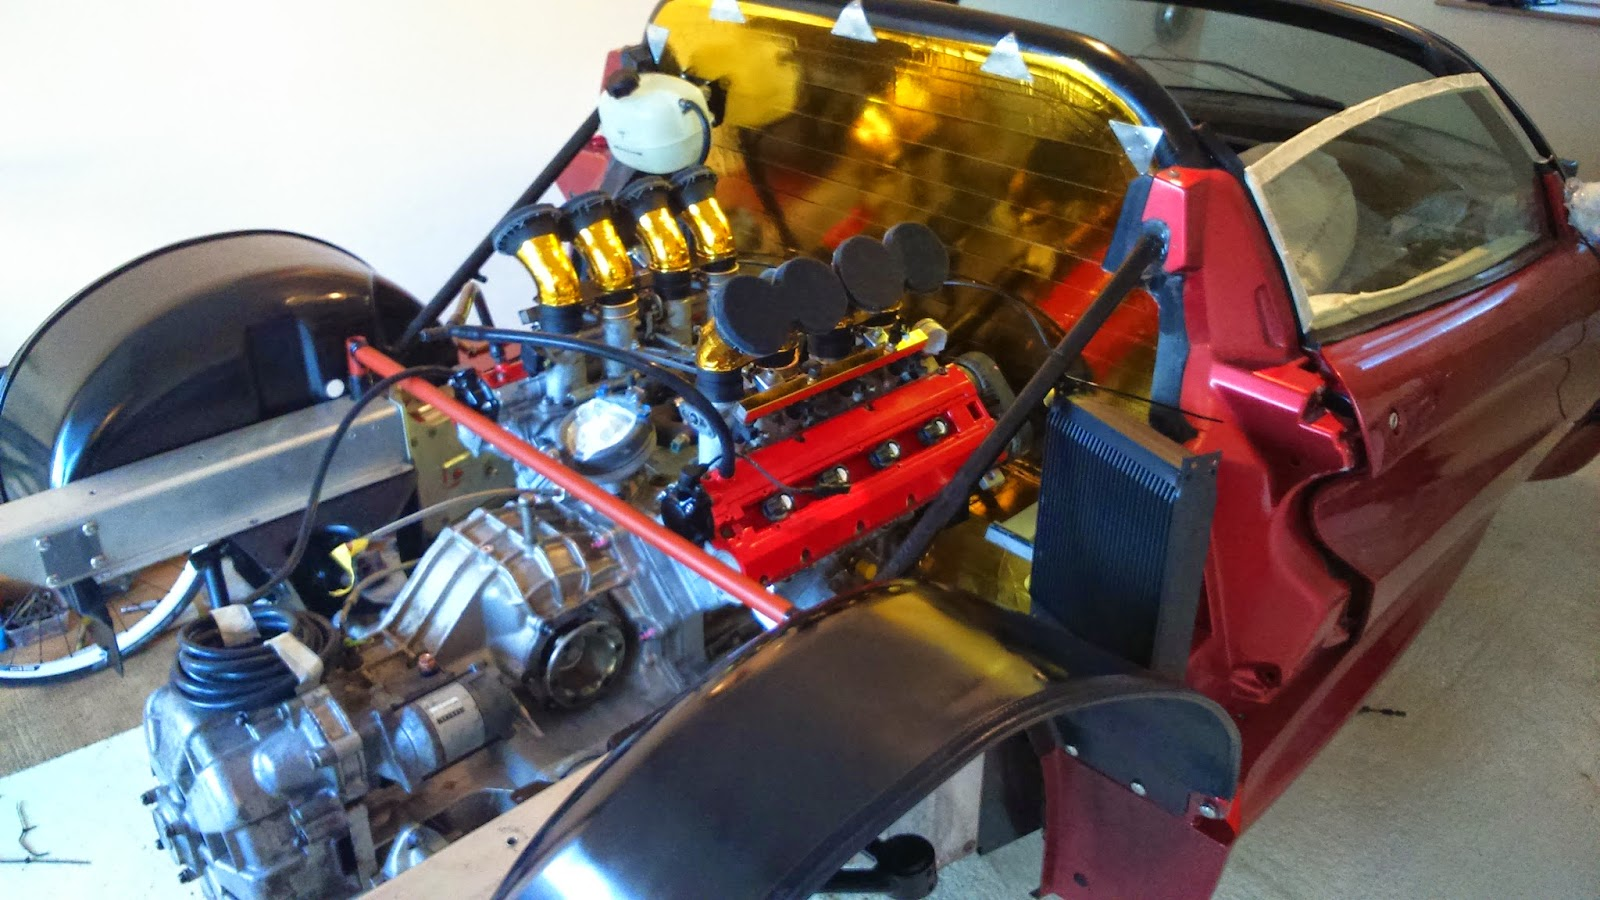 Lotus Exige With A Ferrari F355 V8 Engine Swap Depot